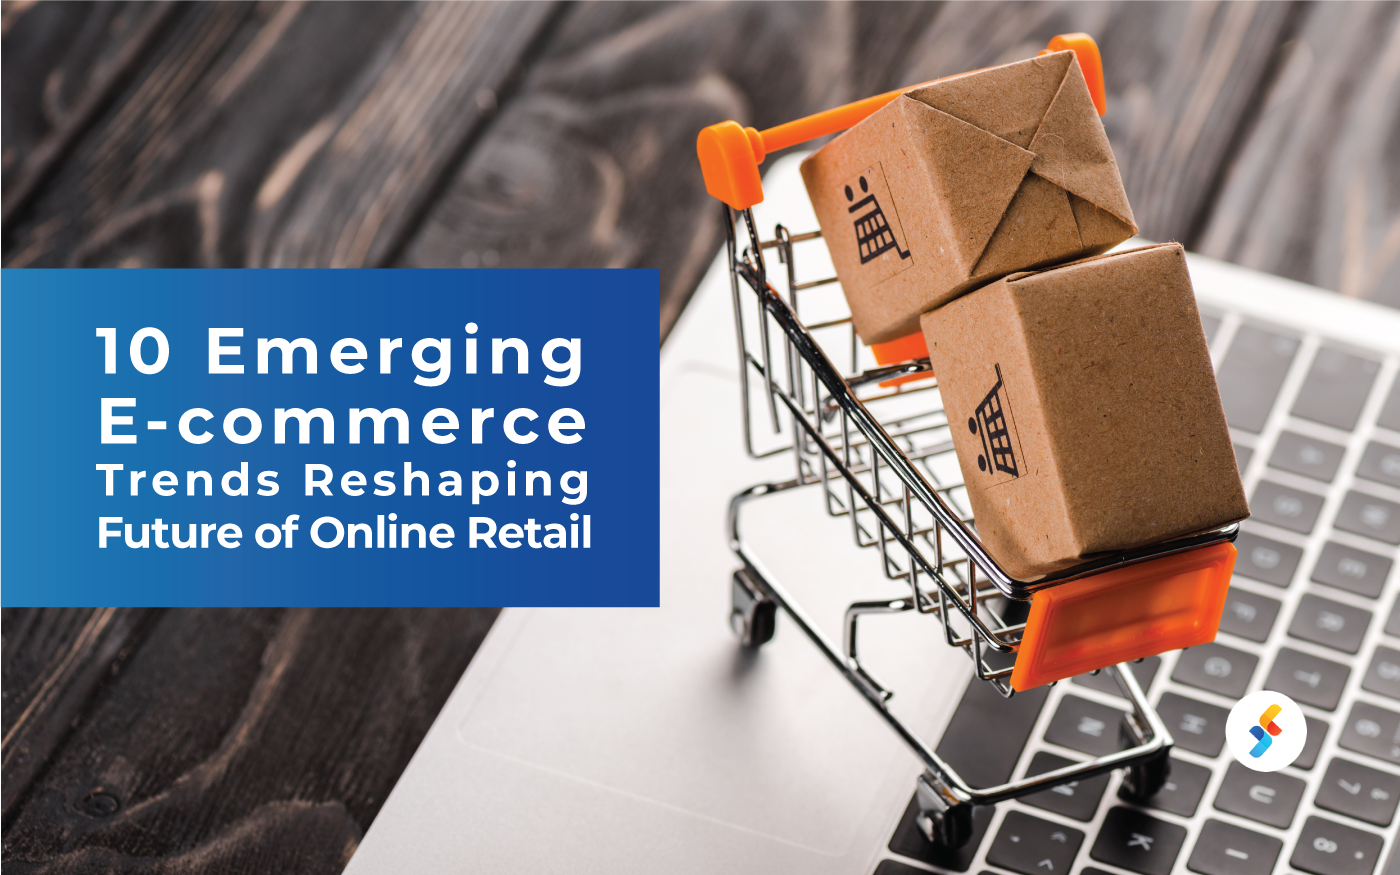 10 Emerging E-Commerce Trends Reshaping Future of Online Retail